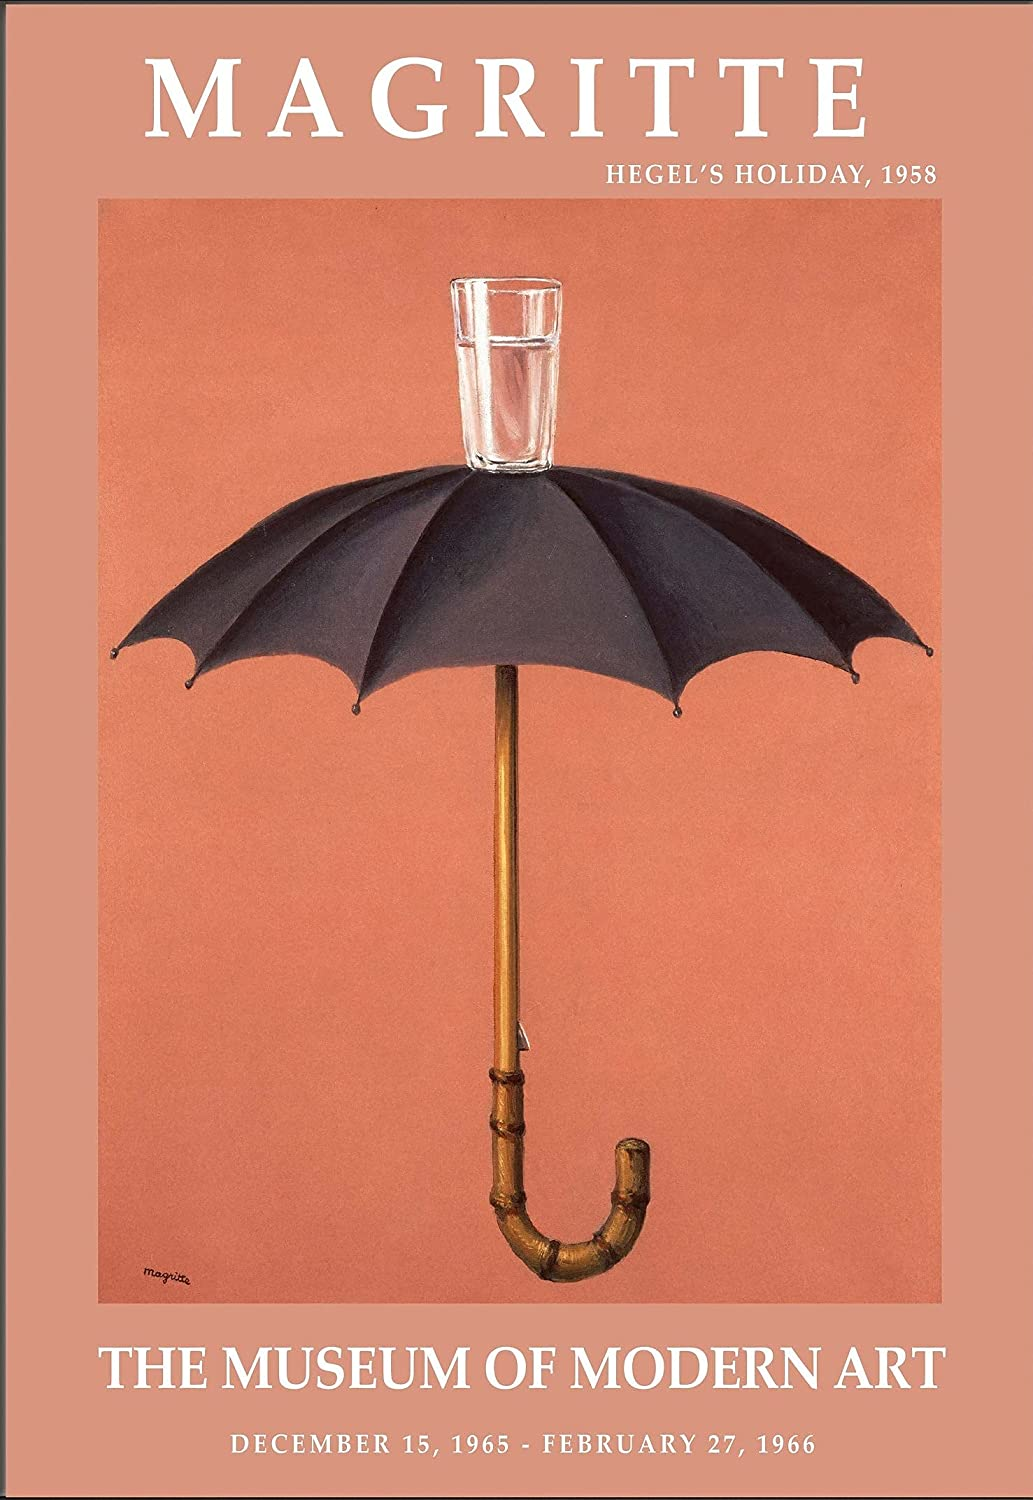 Hegel's Holiday Magritte Art Poster 20x30 Framed Max 75% OFF Sale Canvas